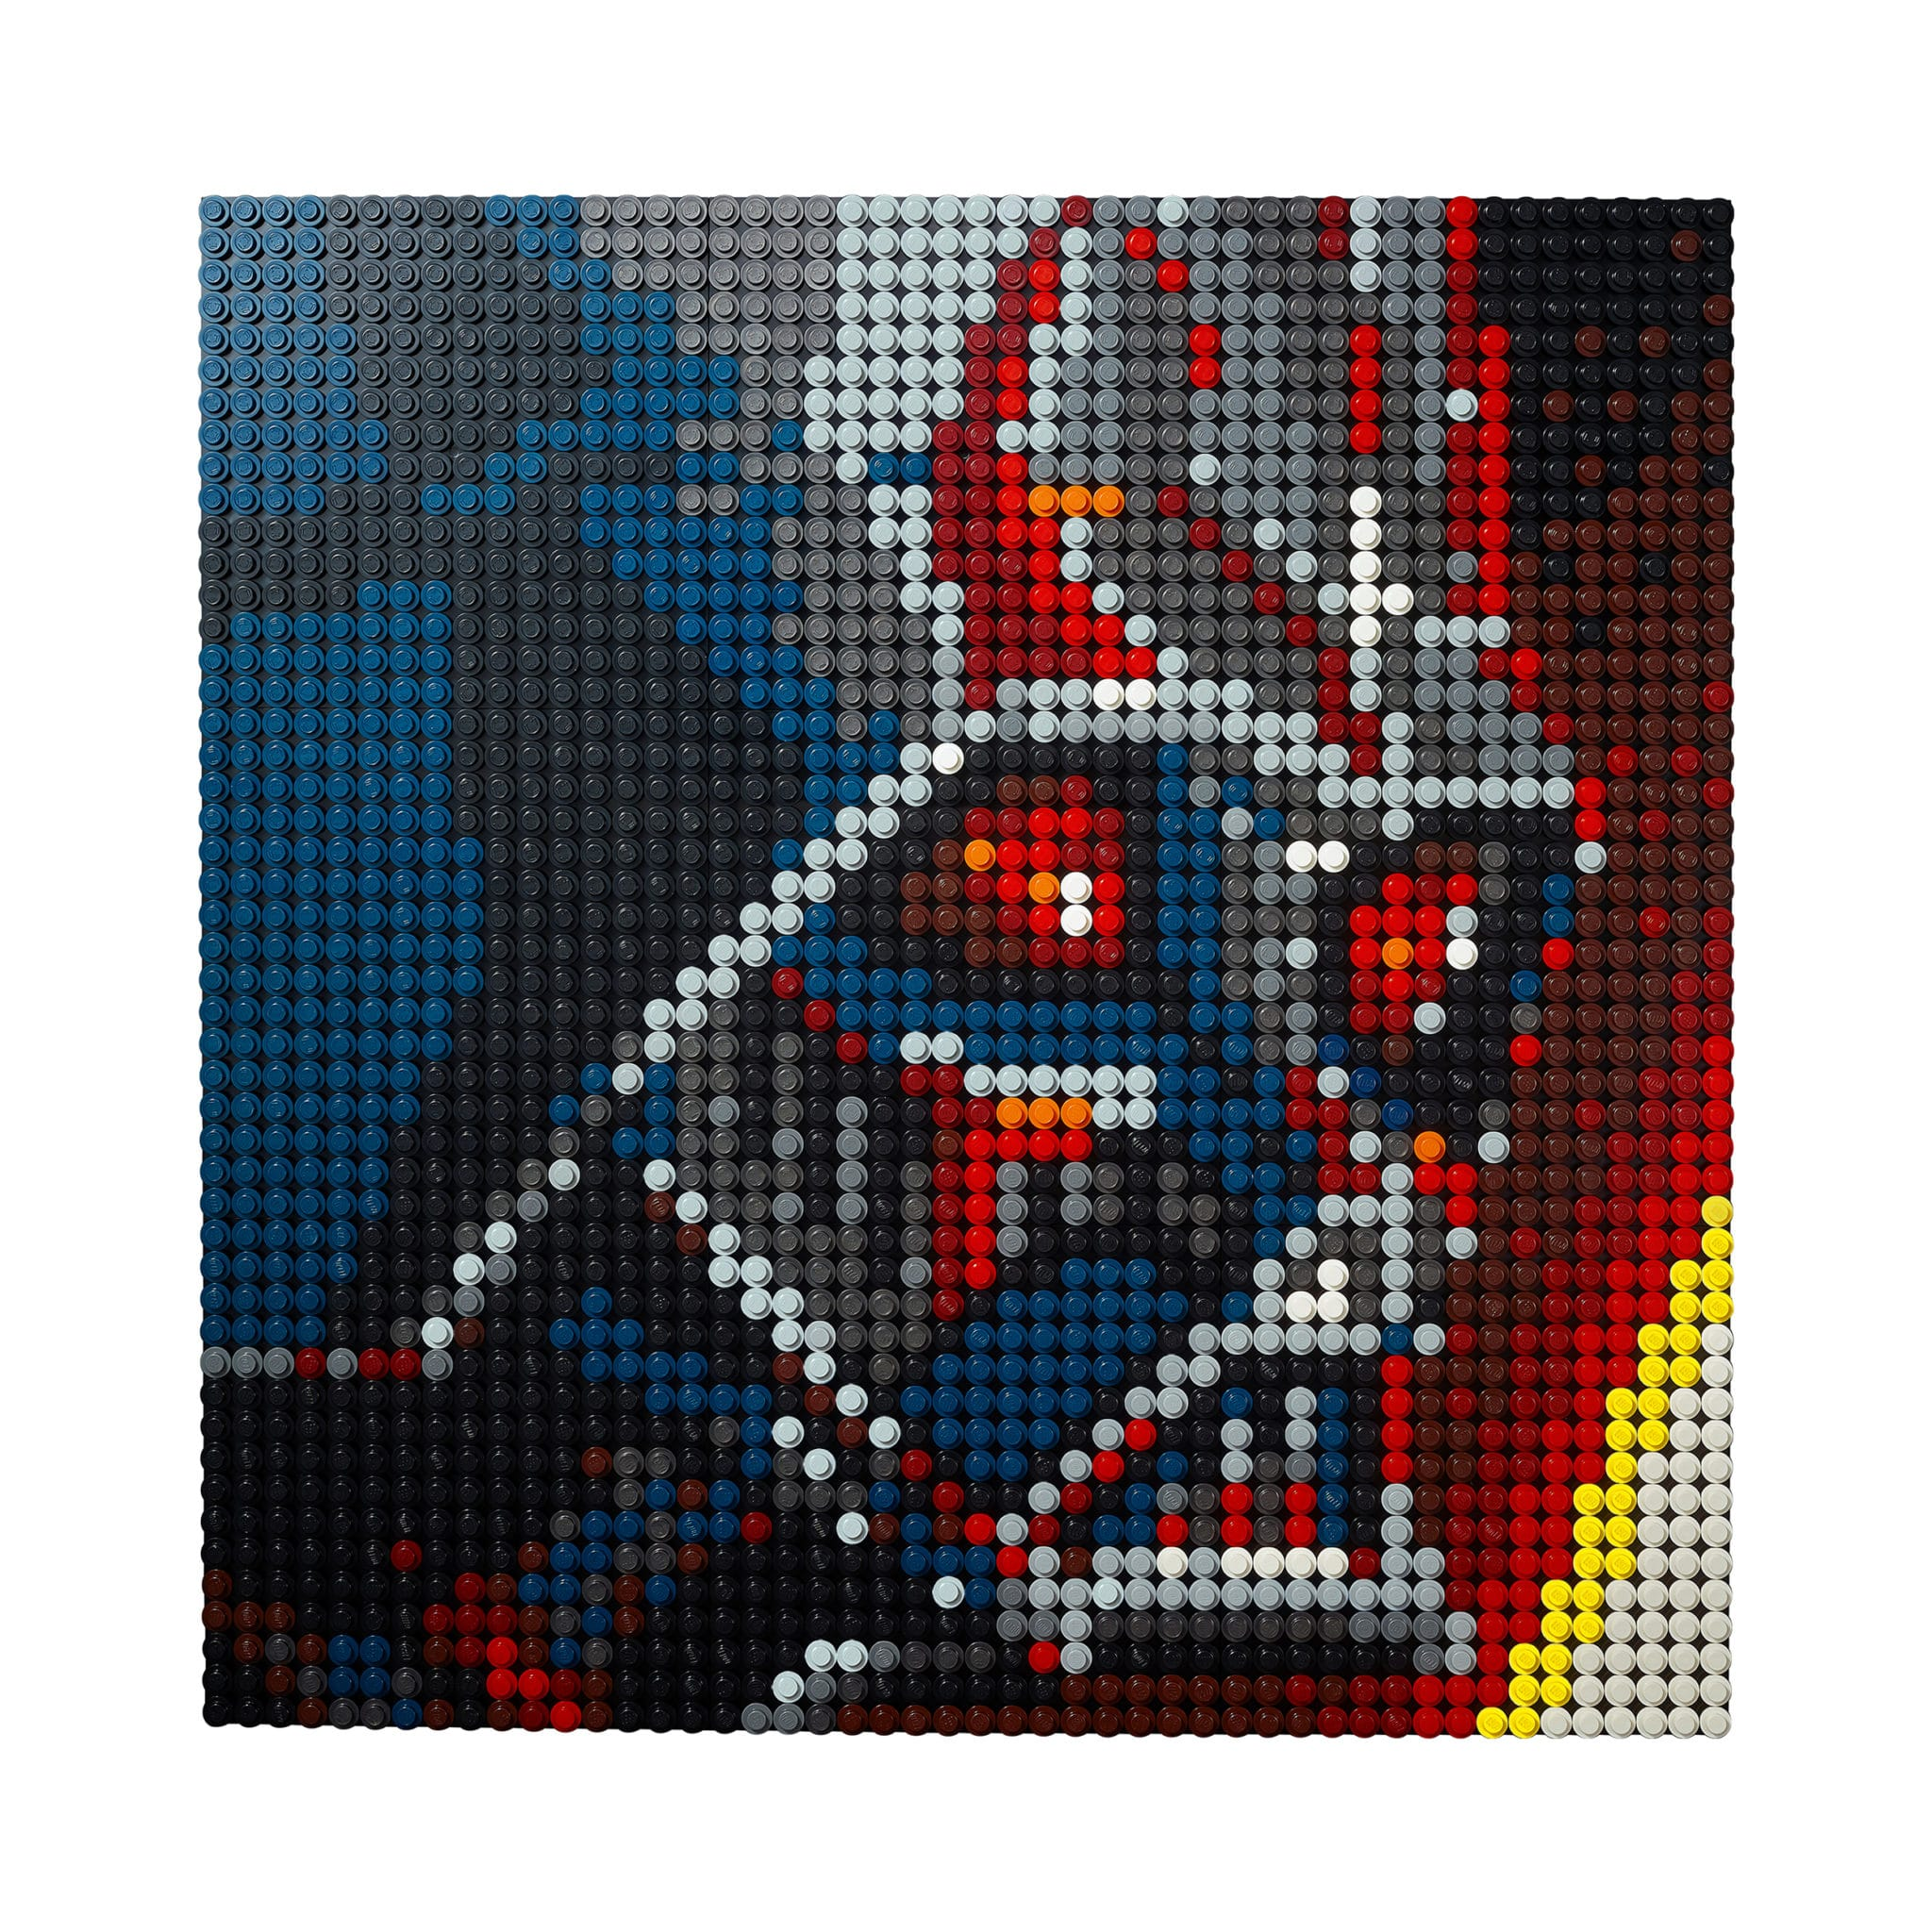 LEGO Art: Darth Vader Rebrick (mit dark red und dark blue)